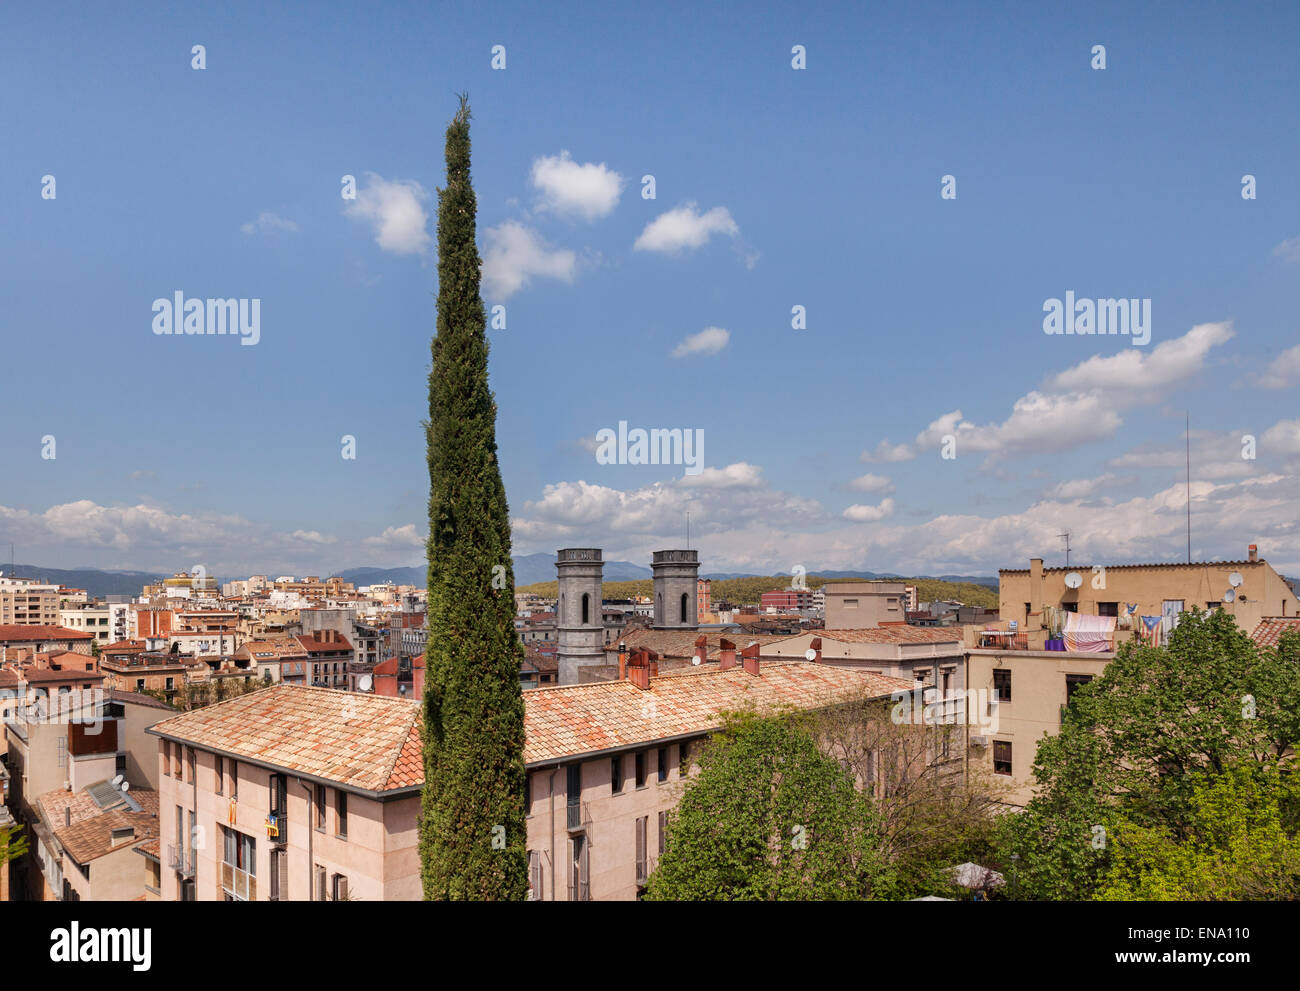 A view over the city of Girona, Catalonia, Spain. Stock Photo